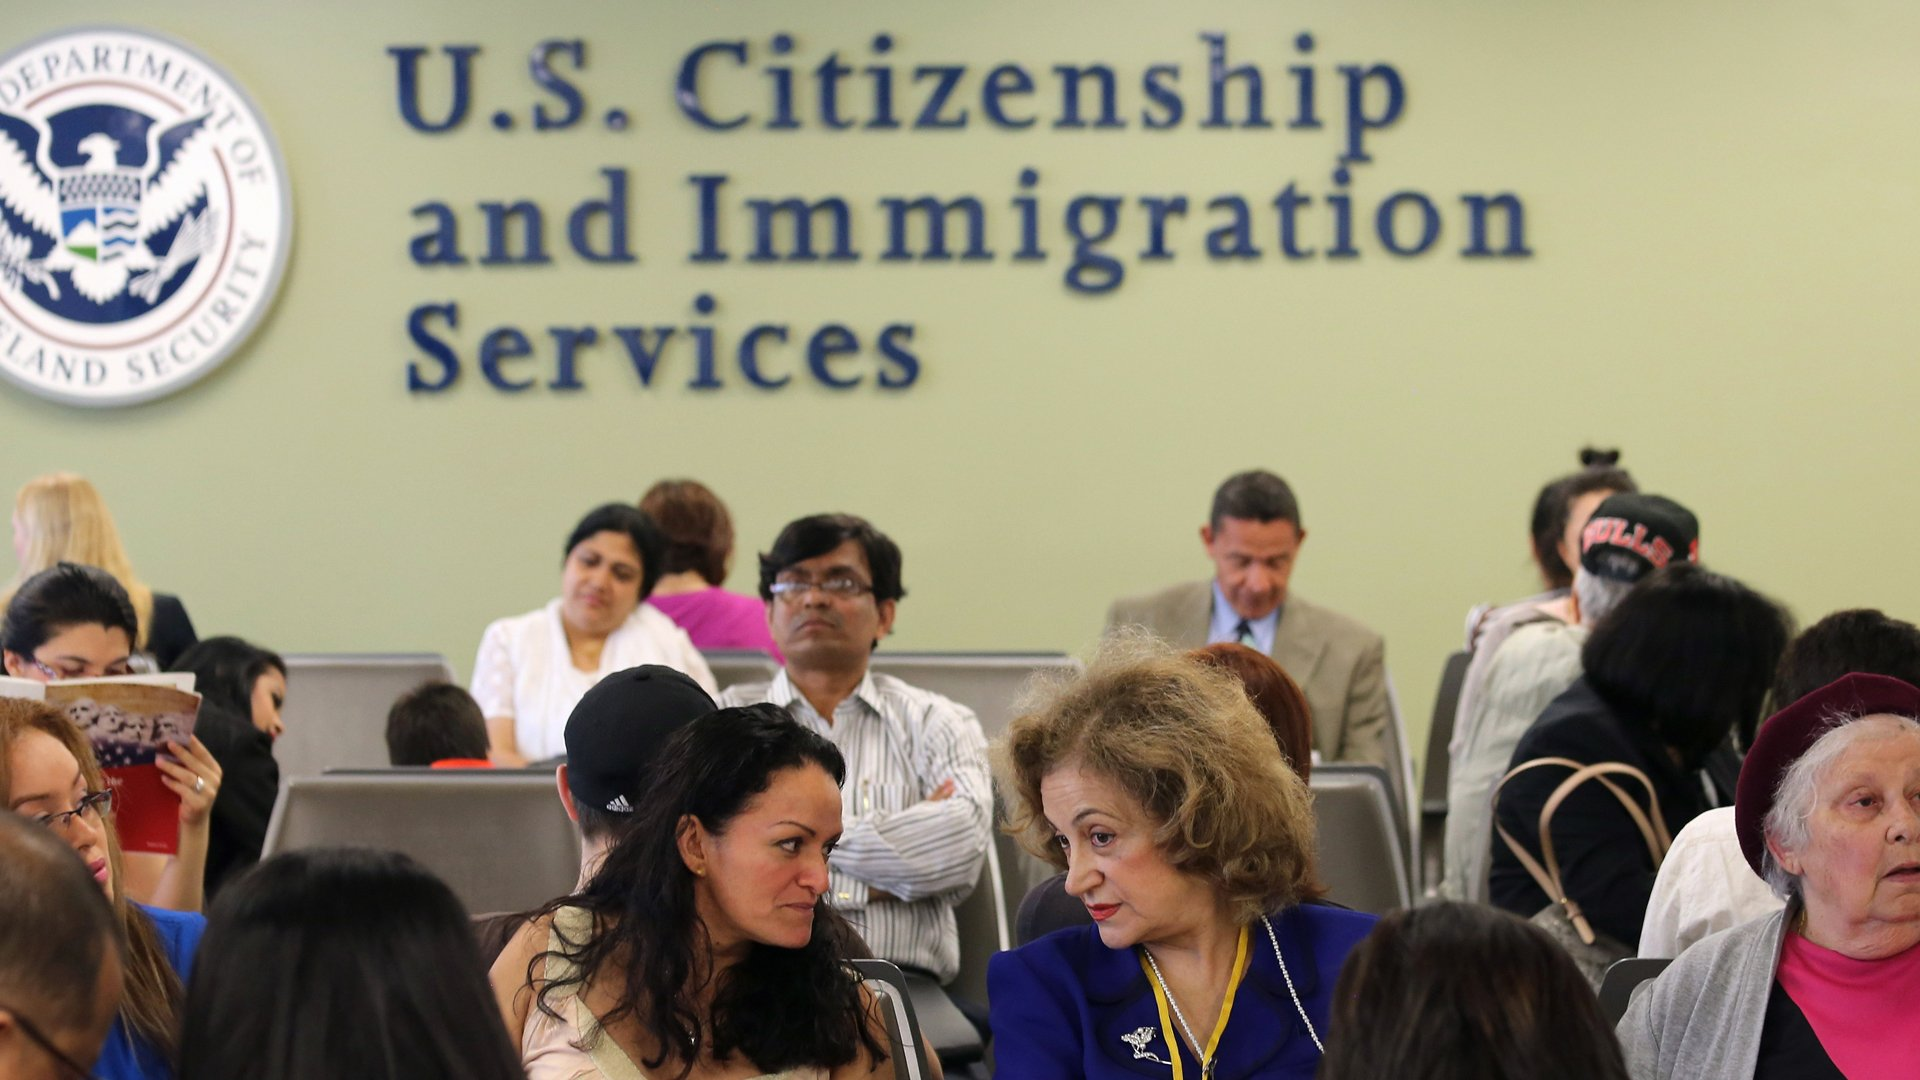 Immigrants await their turn for green card and citizenship interviews at a U.S. Citizenship and Immigration Services office on May 30, 2013, in the Queens borough of New York City. (Credit: John Moore/Getty Images)